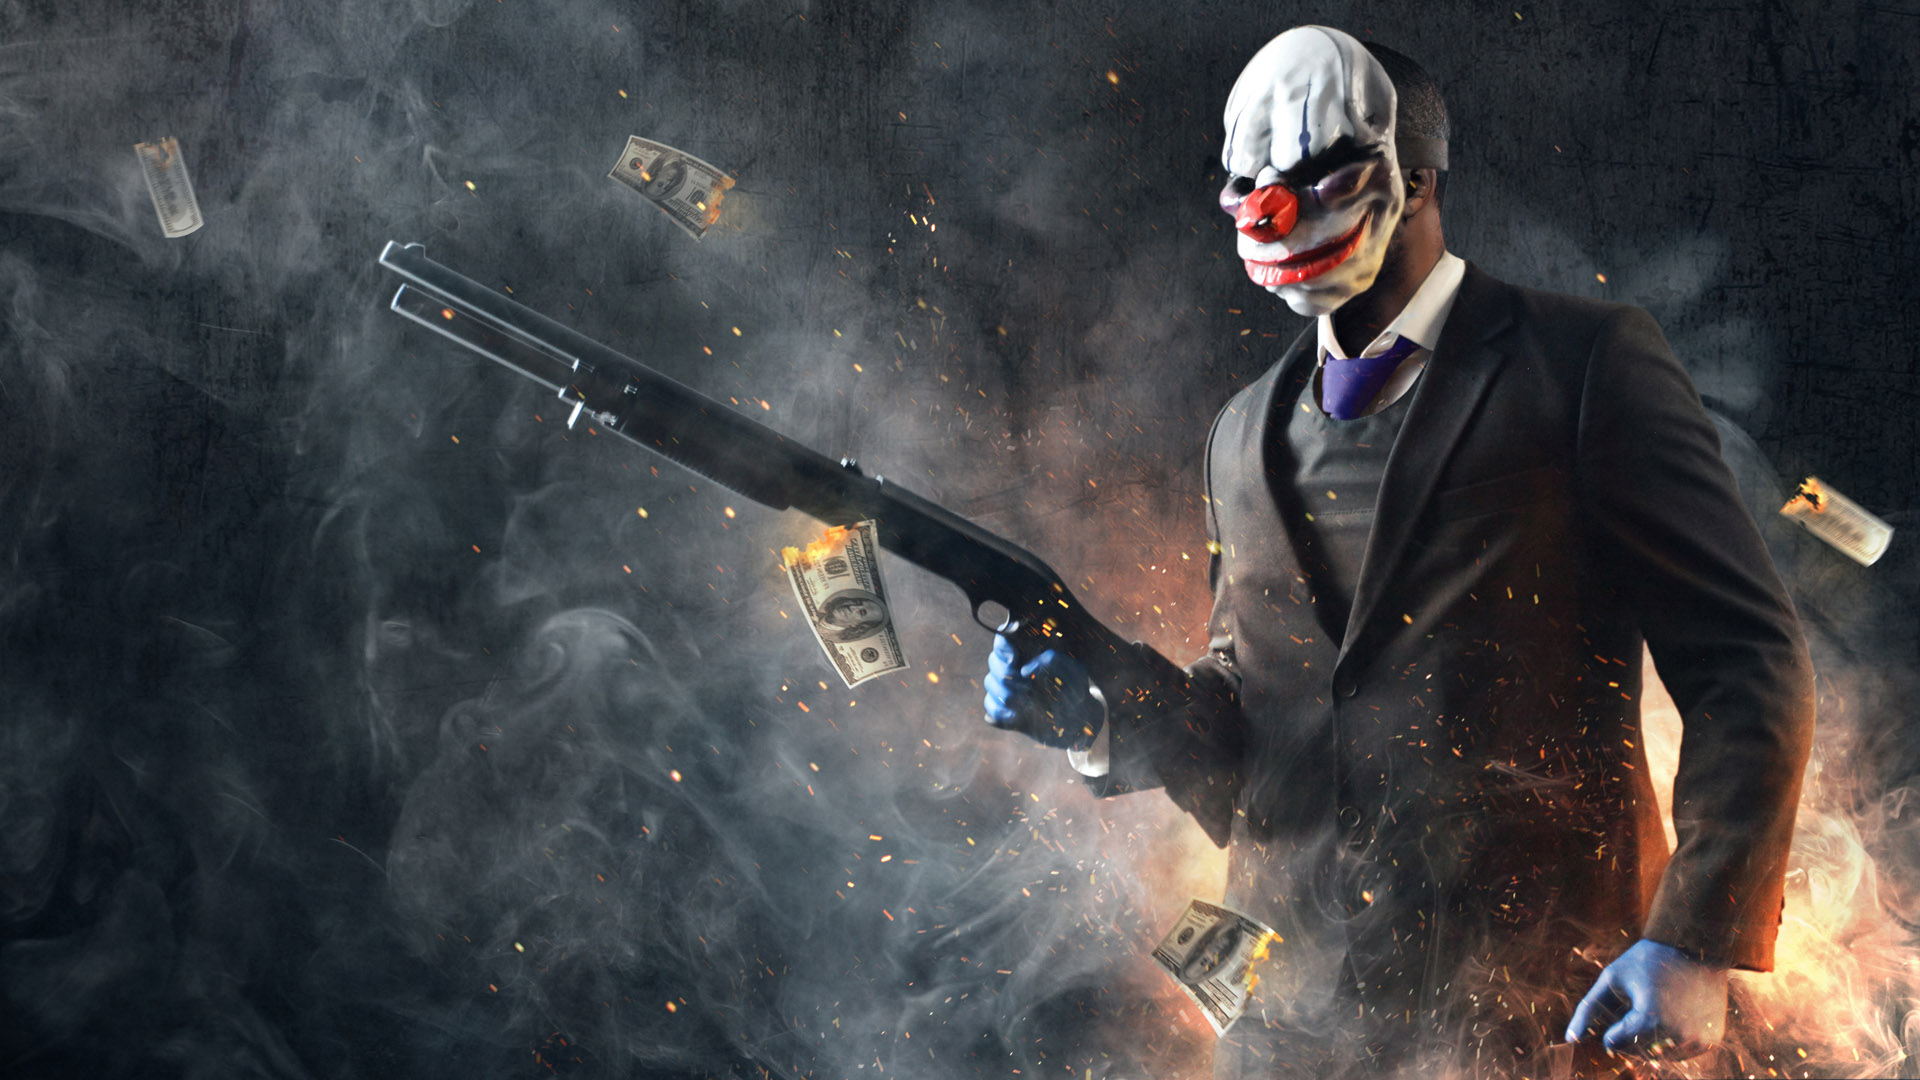 Payday 3 Confirmed, Plus Great News For Payday 2 Players payday 2